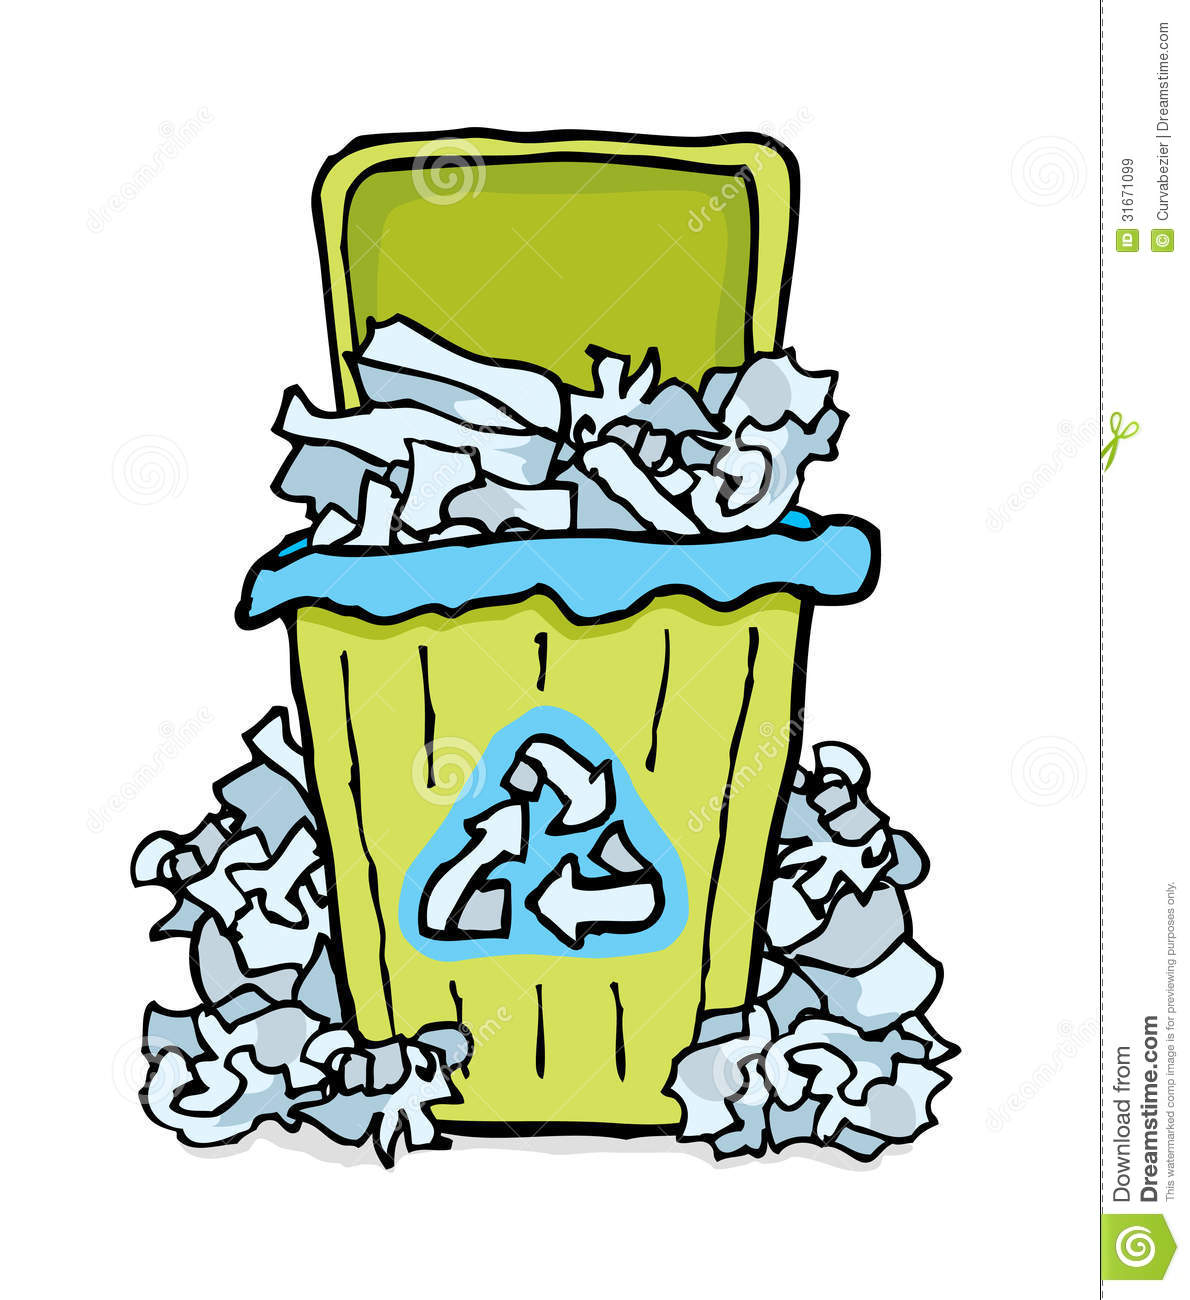 recycling paper bin stock illustration. illustration of messy - 31671099